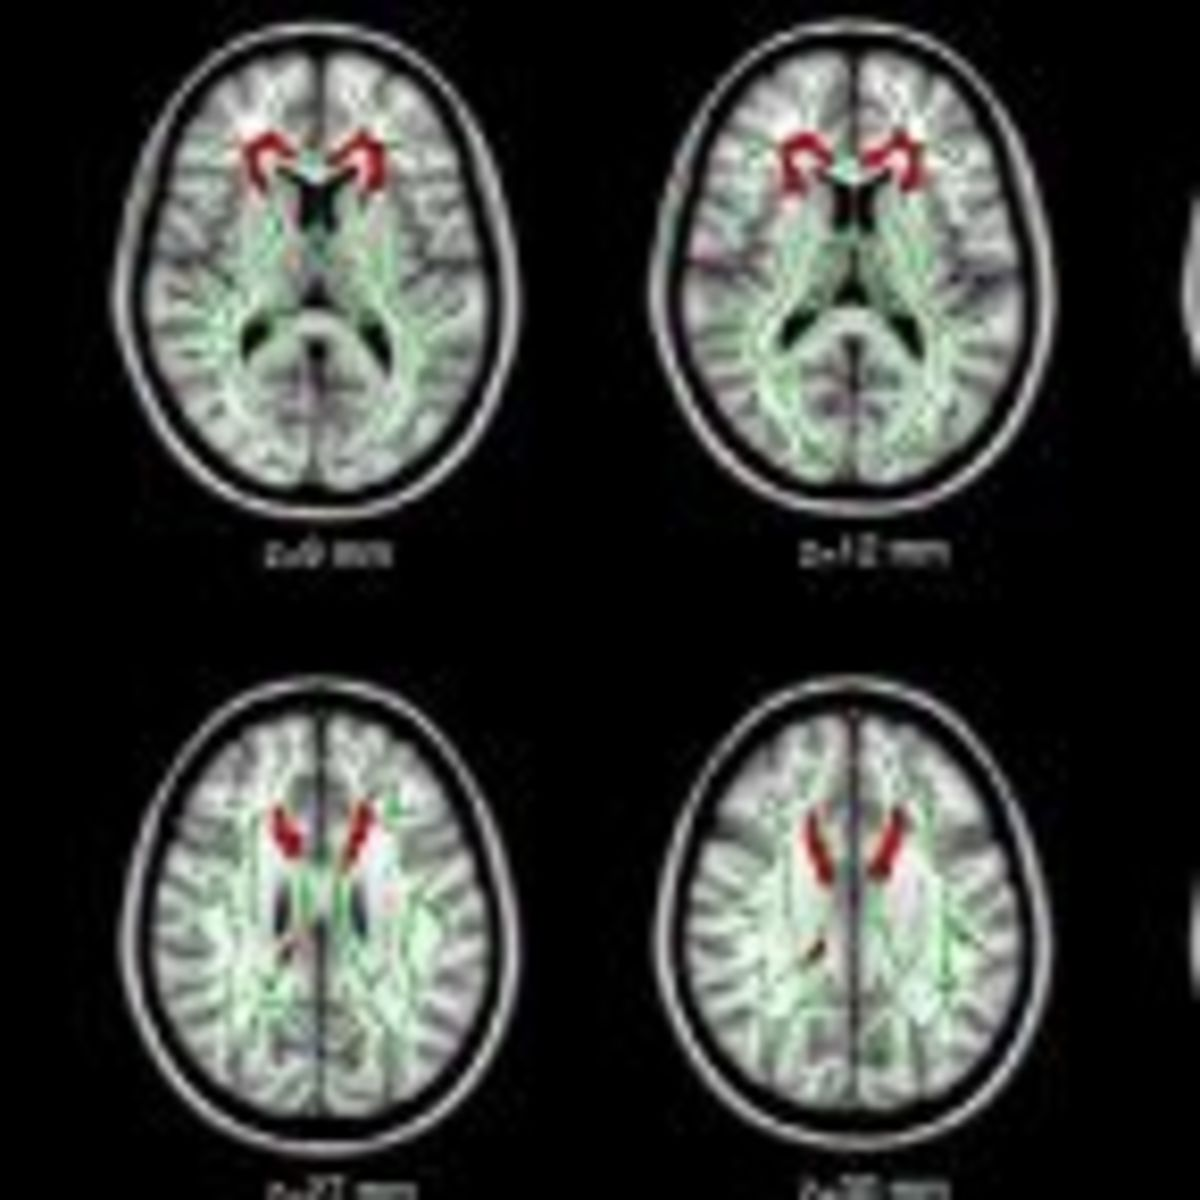 Gray Matters: Too Much Screen Time Damages the Brain | Psychology Today